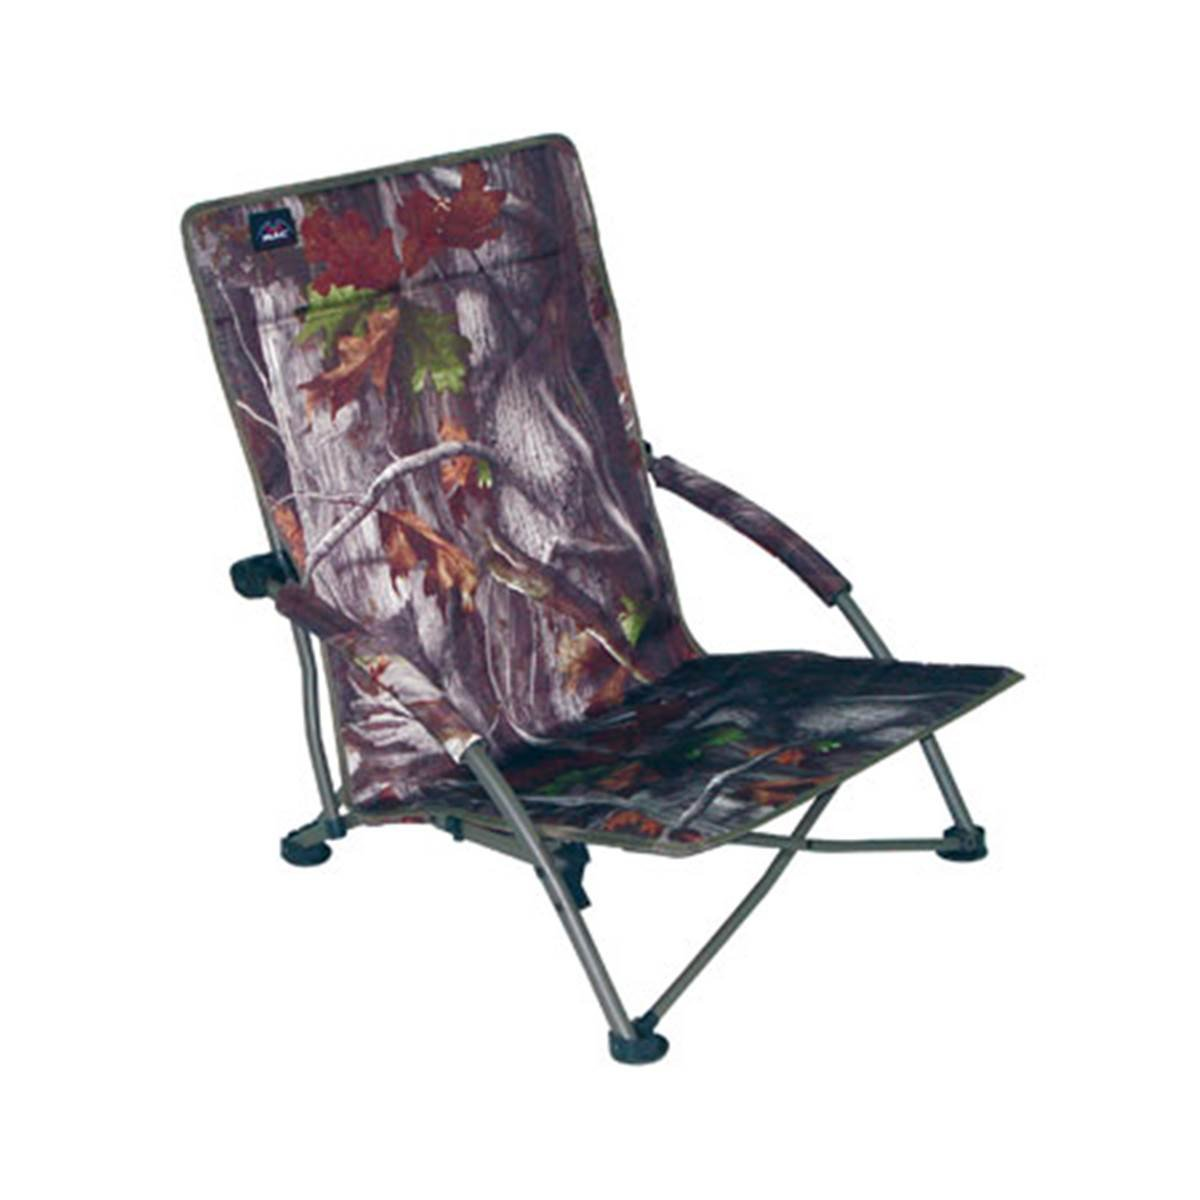 Extremely Durable, Mac Sports Camo Portable Turkey Seat, Folds Quickly & Effortlessly for Easy Transport & Storage, Includes Carry Case, Great For Your Outdoor Adventure or Picnics